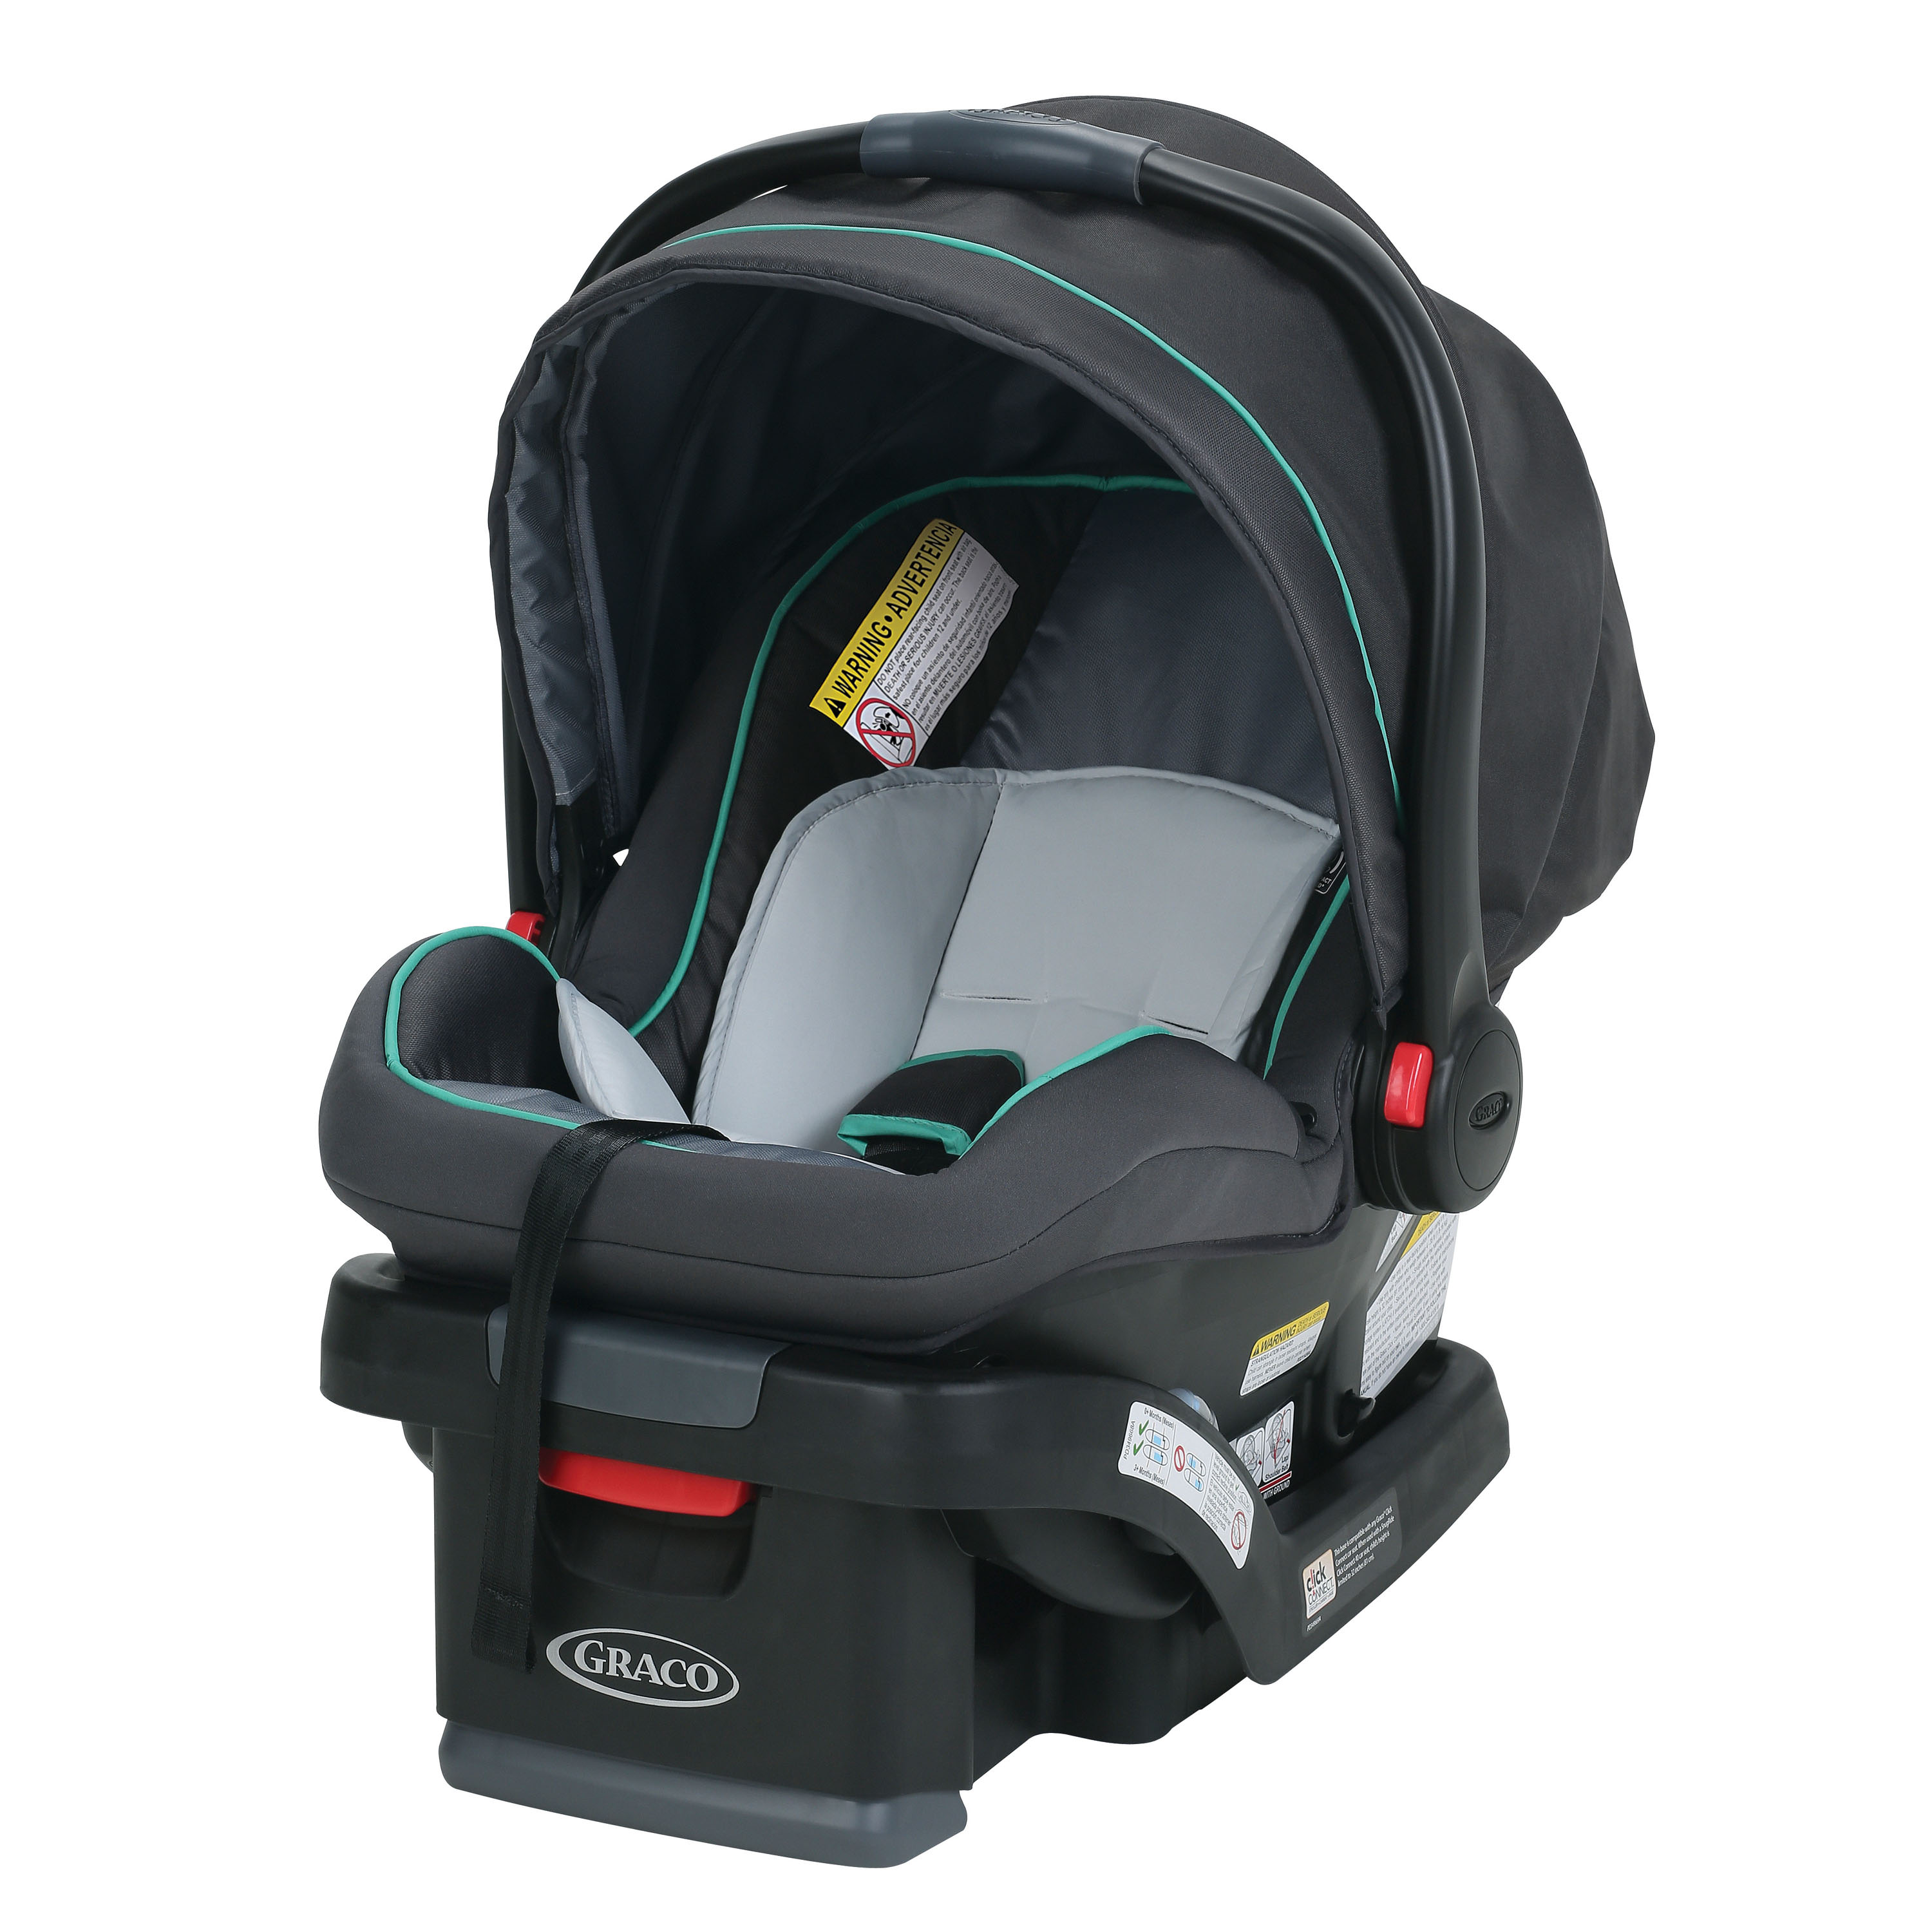 Graco SnugRide SnugLock 35 Infant Car Seat, Lake Green